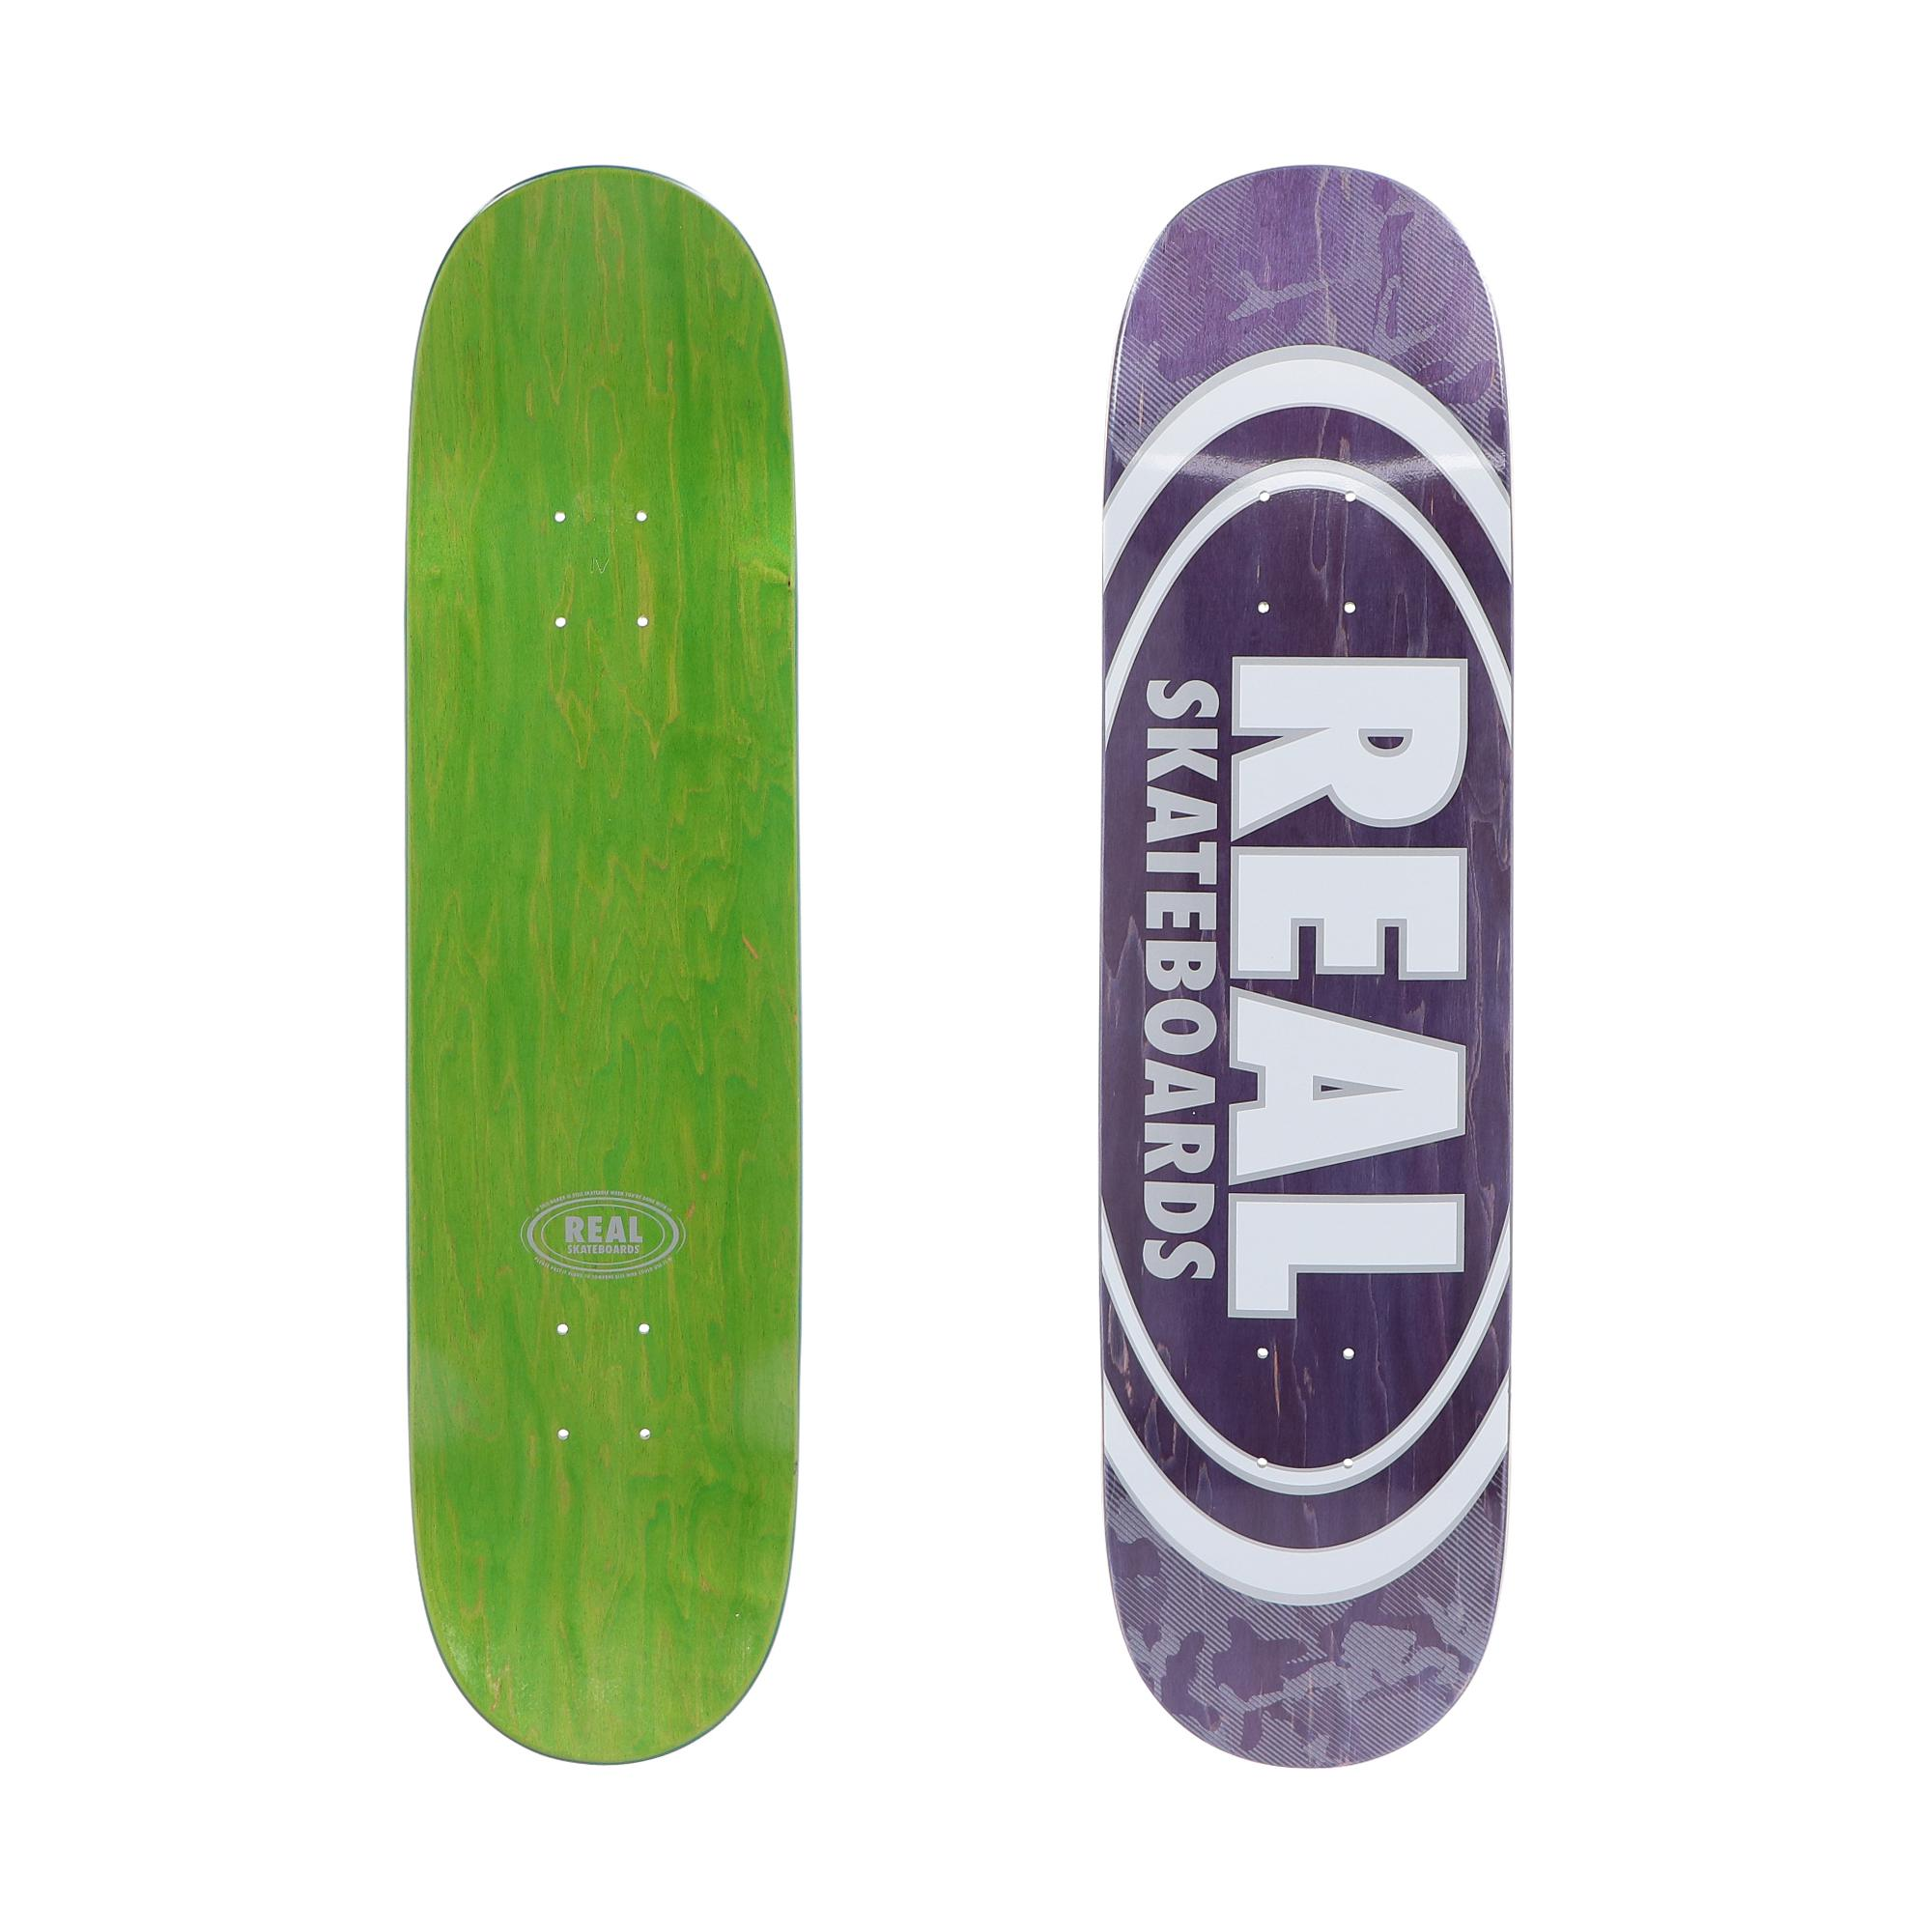 Real Re Oval Pearl Patterns Deck Violet